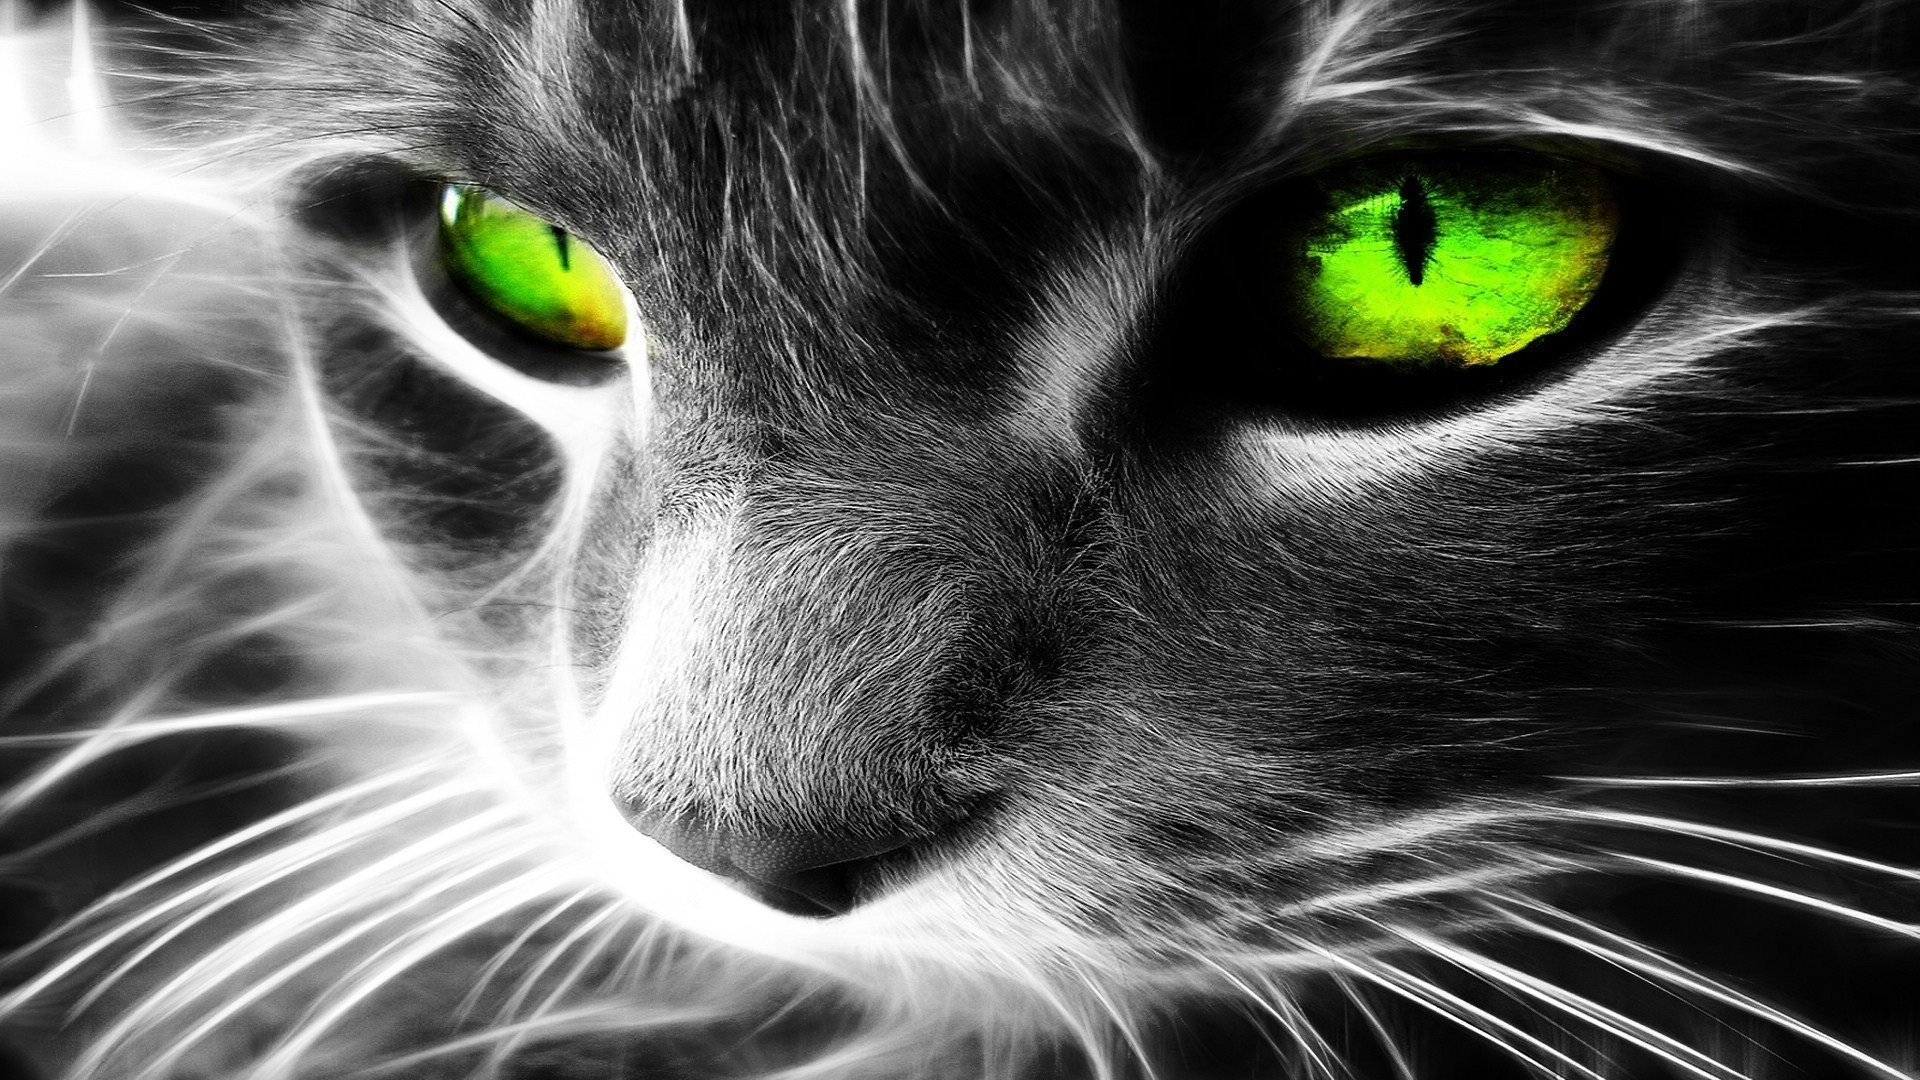 Cat with green eyes wallpaper HQ WALLPAPER – (#37274)